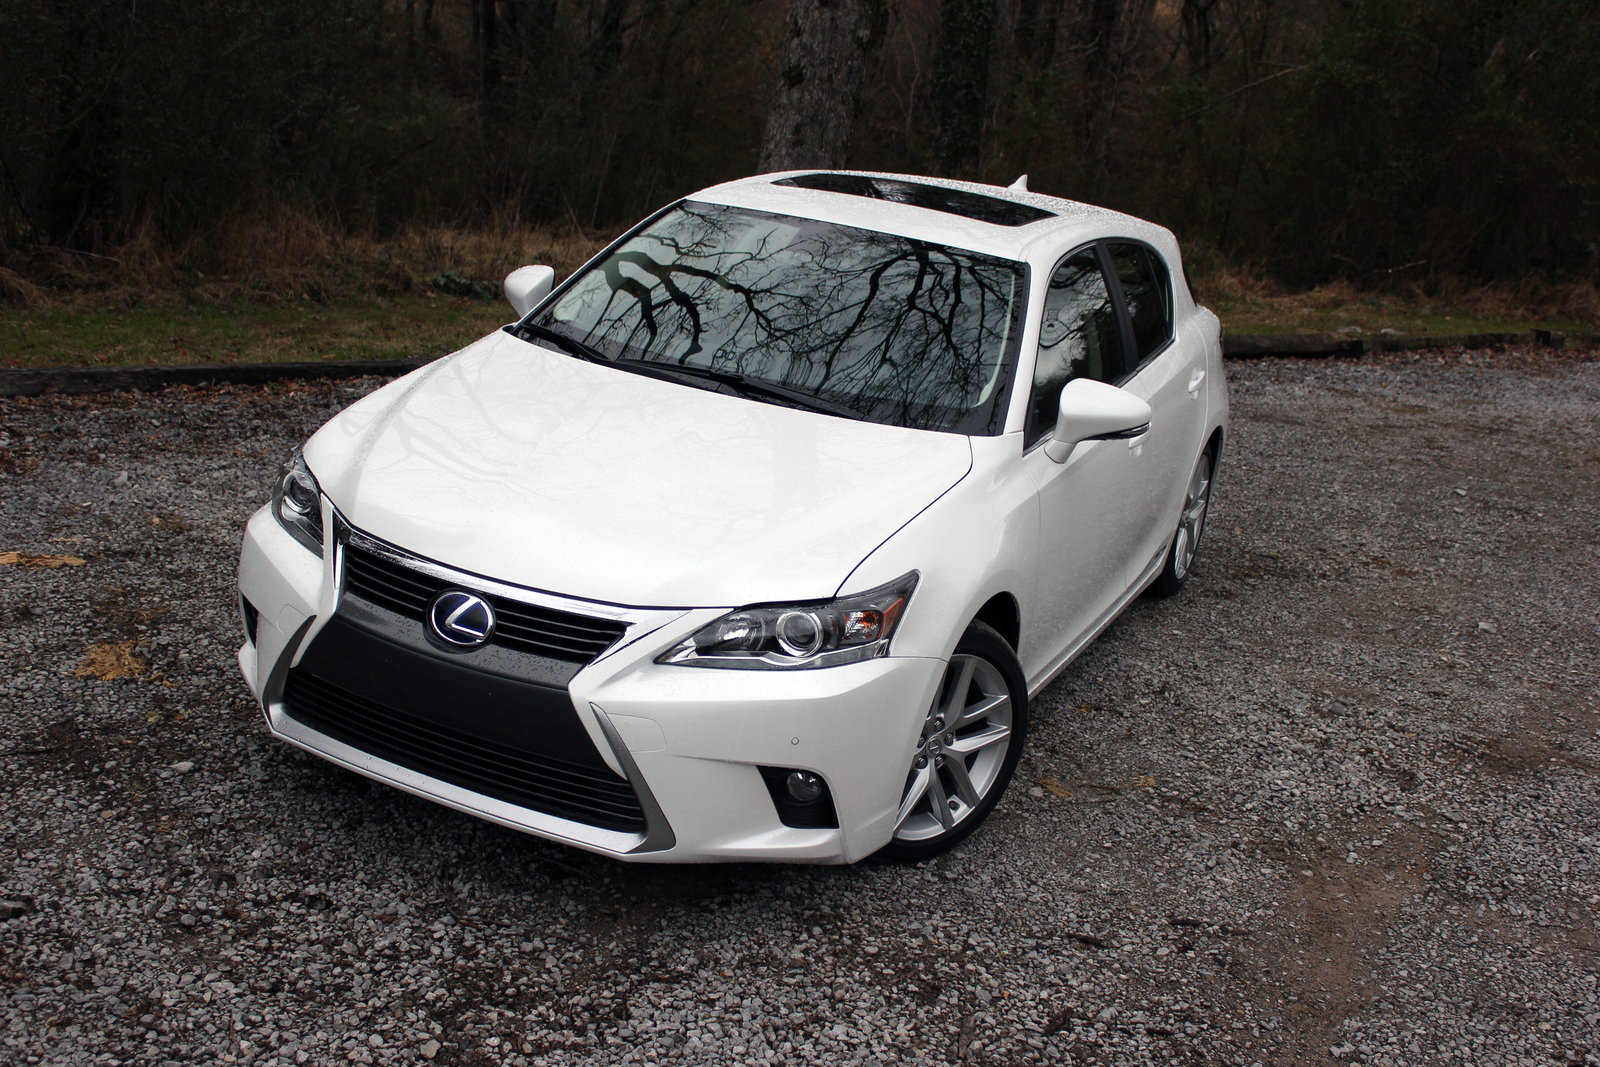 2015 lexus ct 200h driven picture 615191 car review top speed. Black Bedroom Furniture Sets. Home Design Ideas